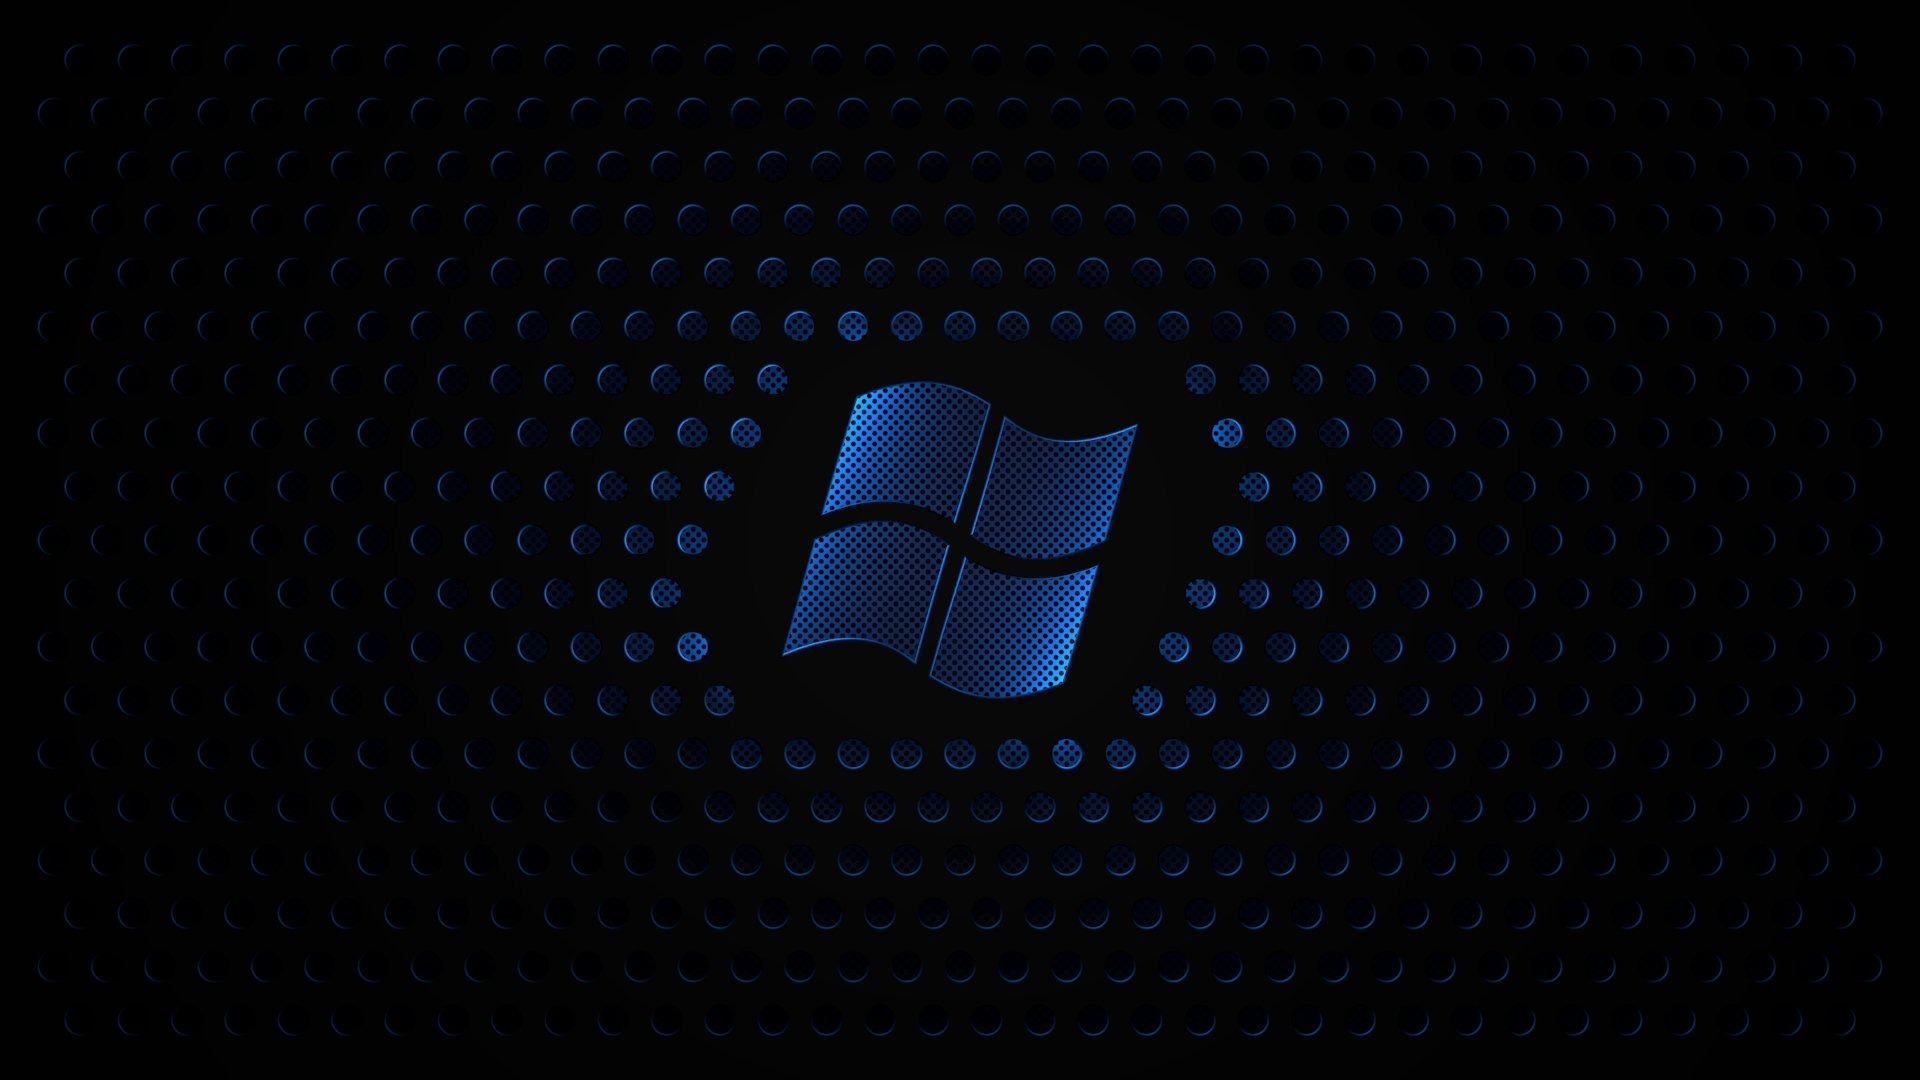 windows wallpapers desktop wallpaper images backgrounds 1920x1080 1920x1080